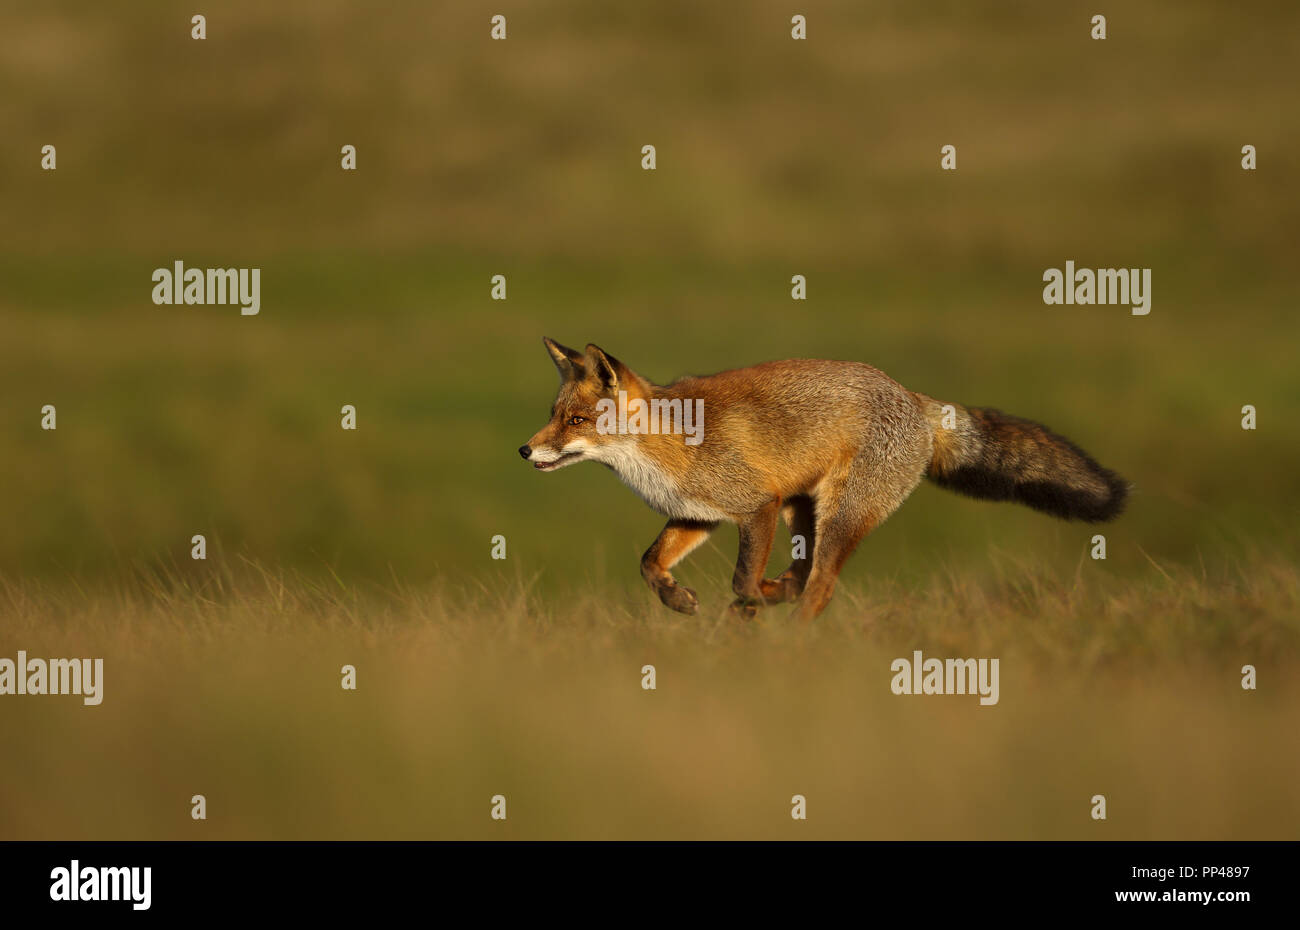 Close up of a Red fox running across the field. Stock Photo